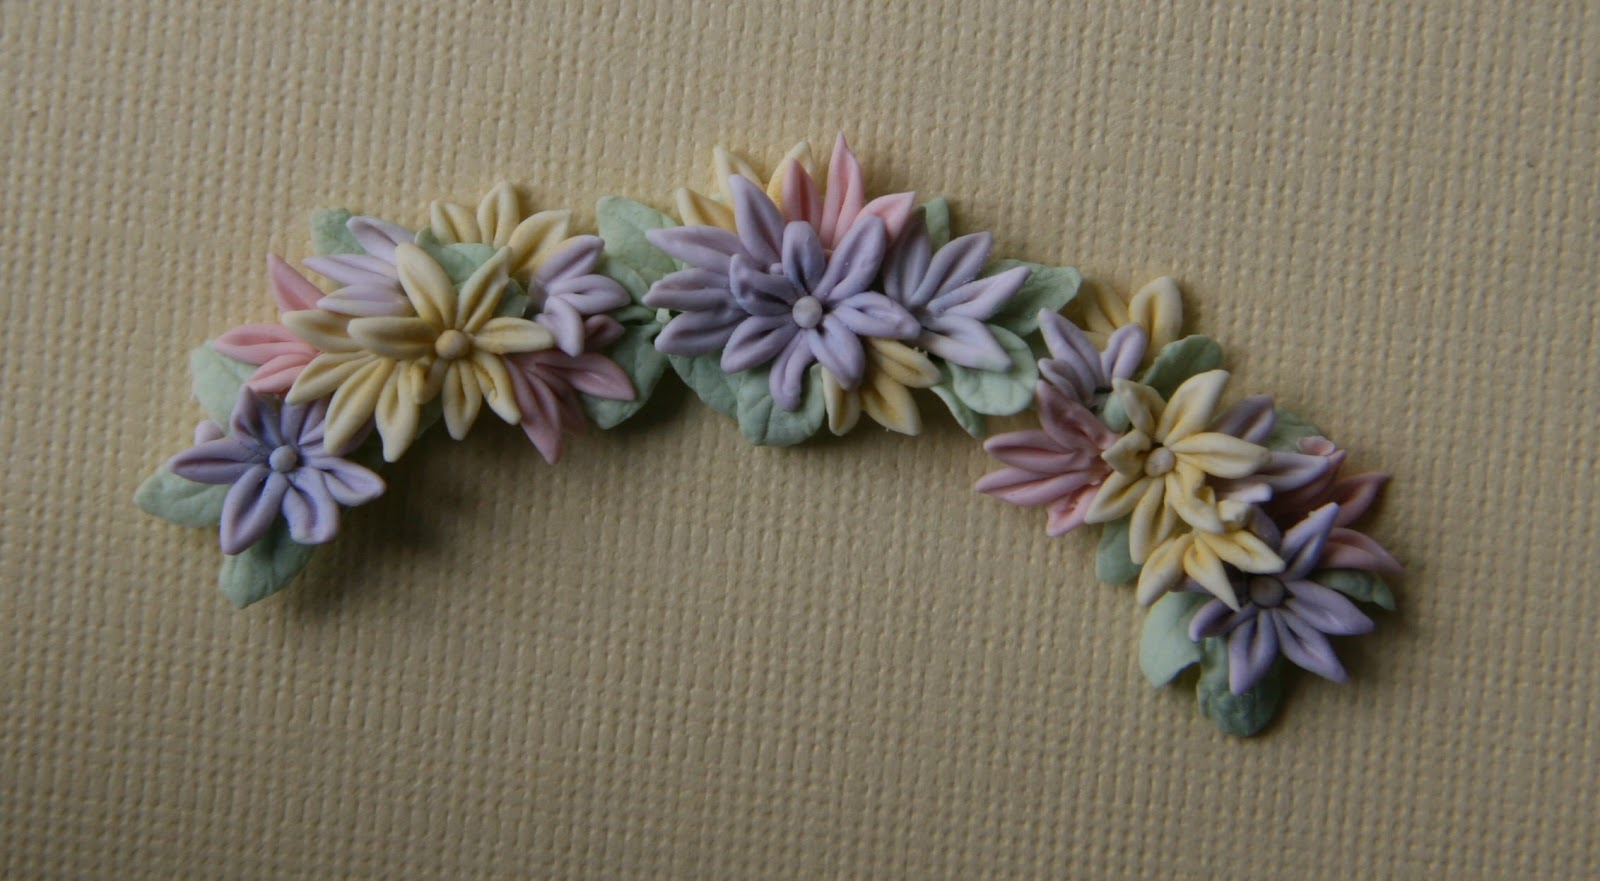 Chrystals Designs Miniature Polymer Clay And Paper Flowers